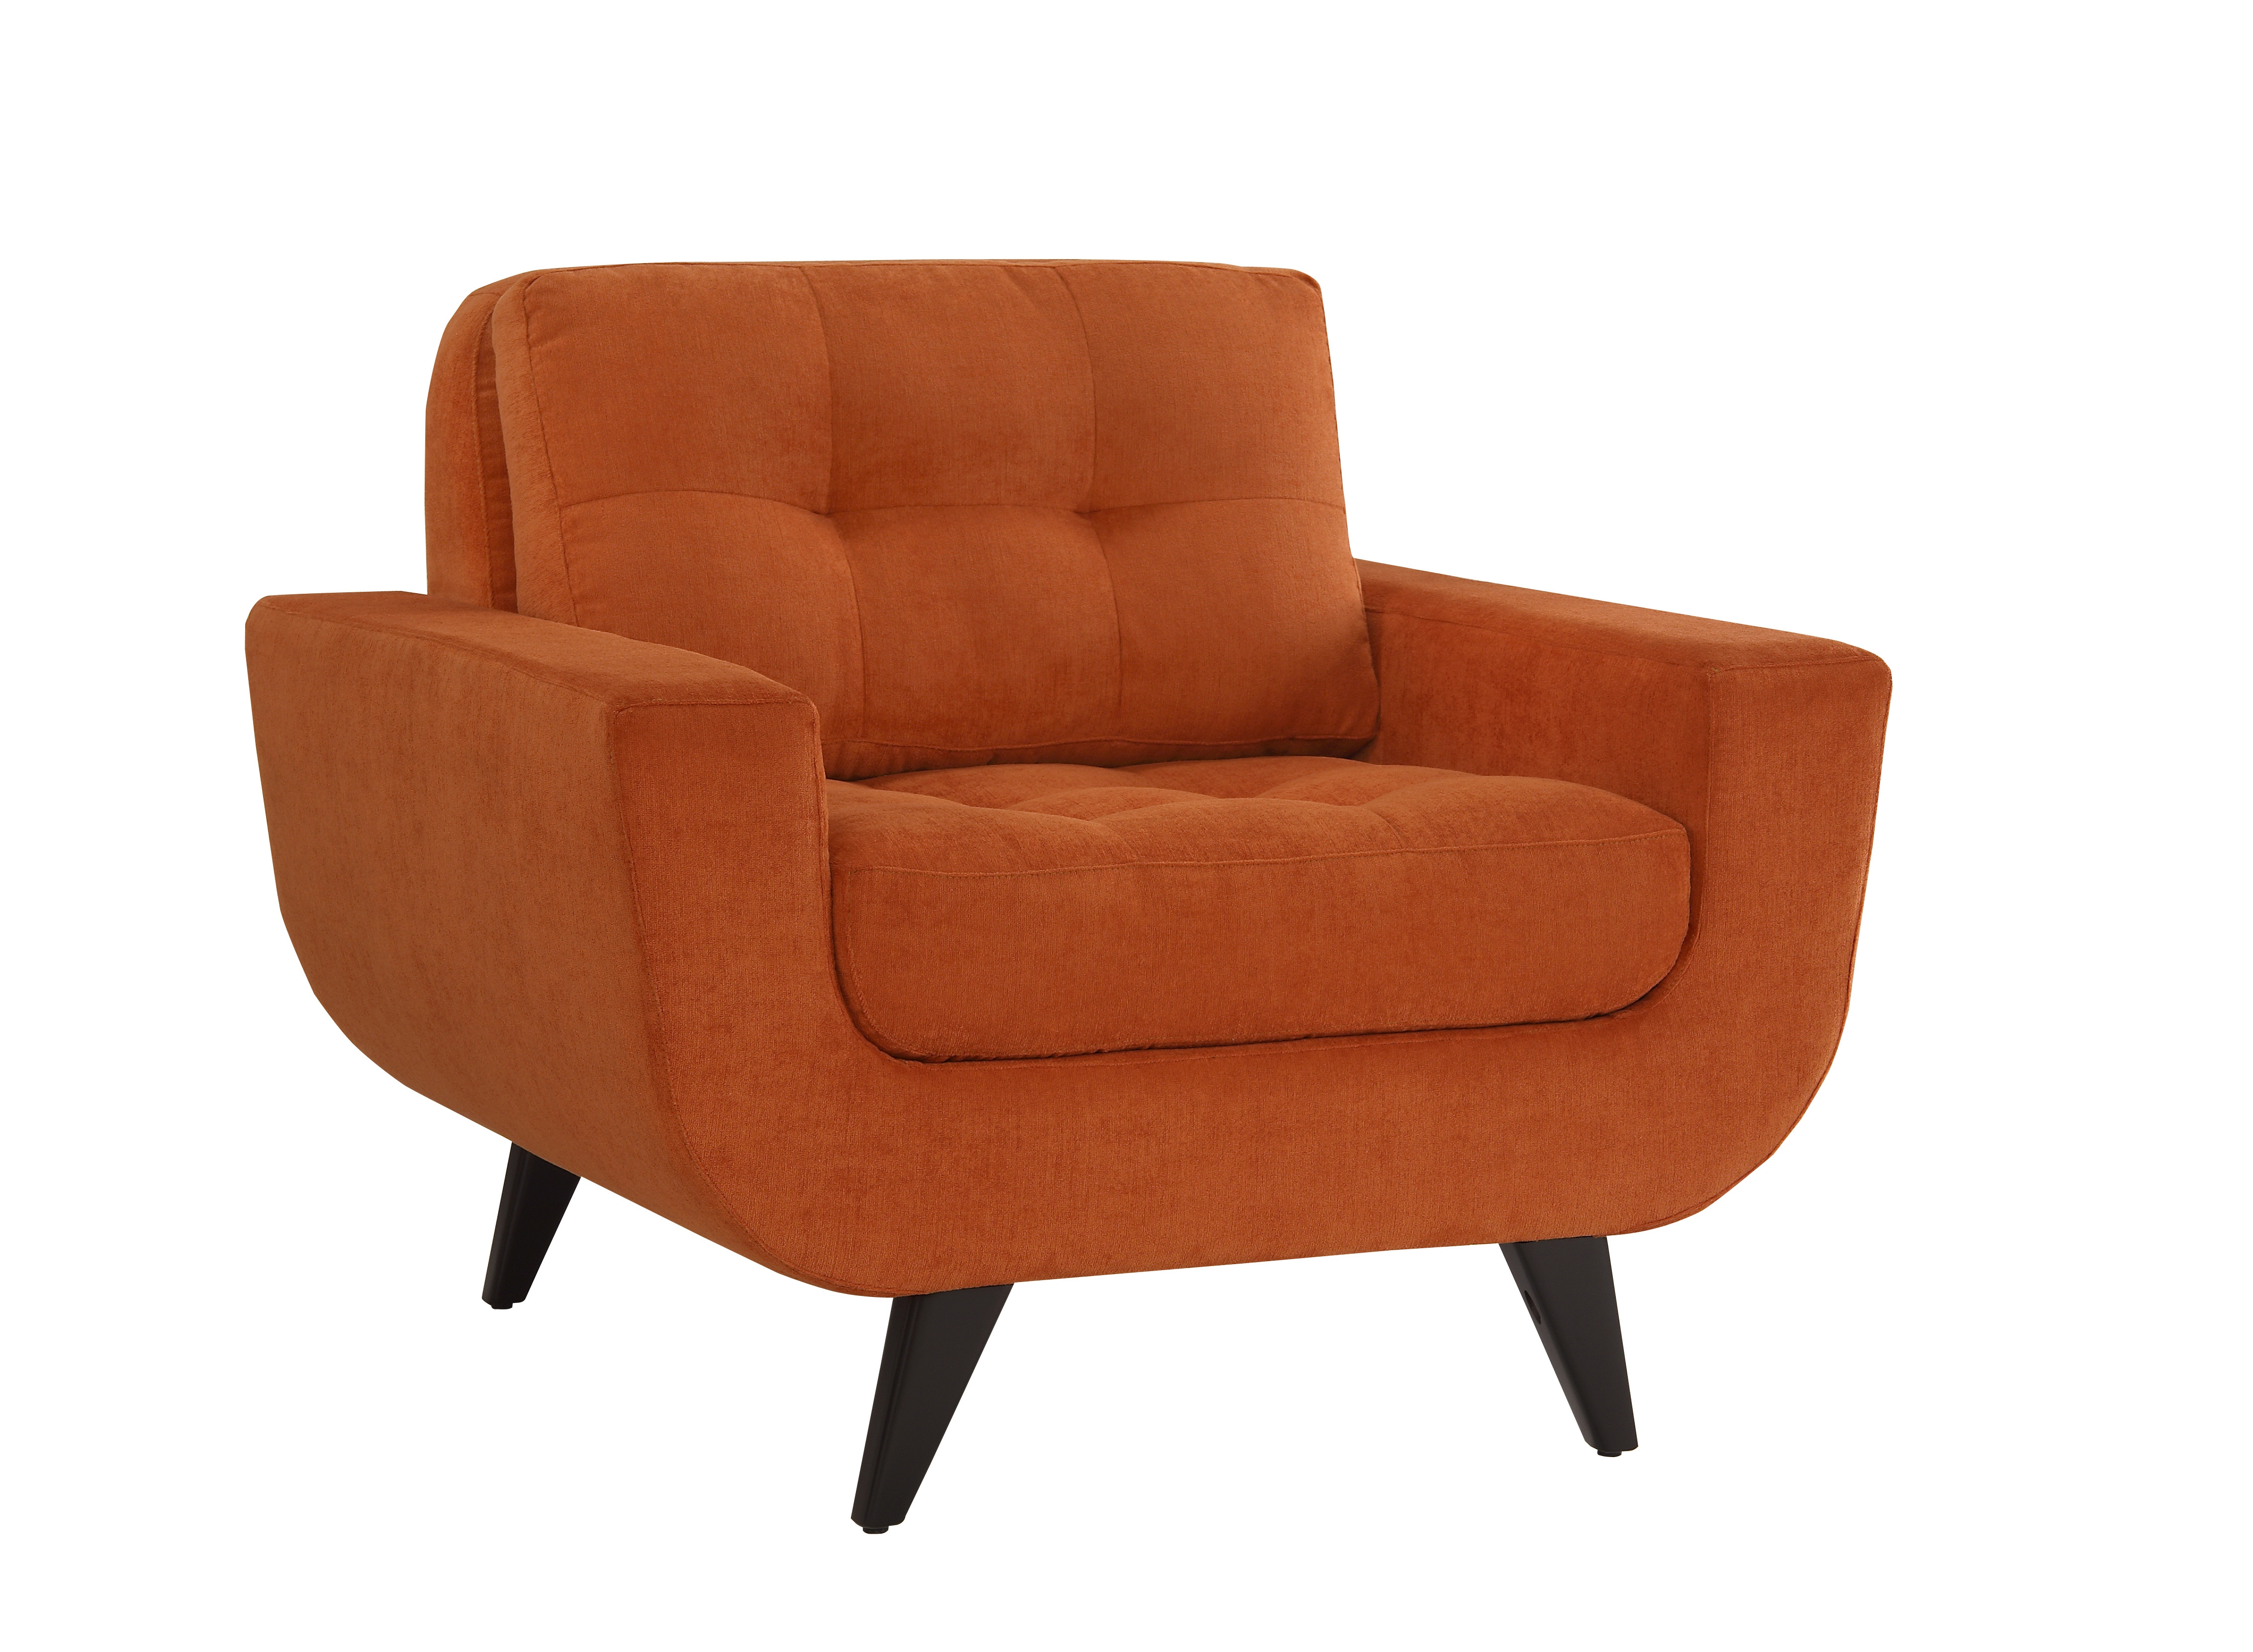 tangerine sofa ikea slipcovers discontinued is the new interior design accent color as seen